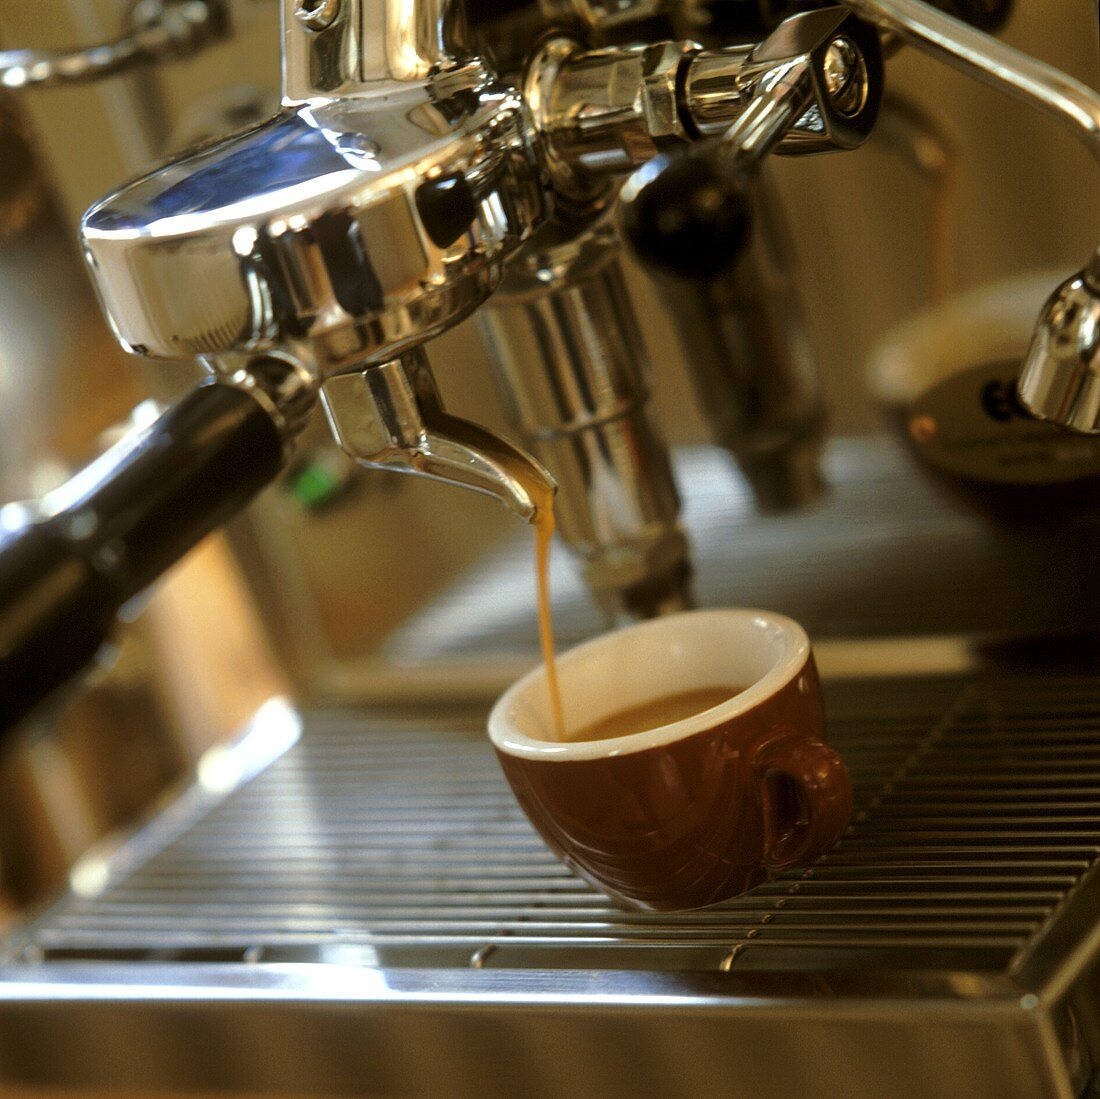 Espresso running out of espresso machine into brown cup